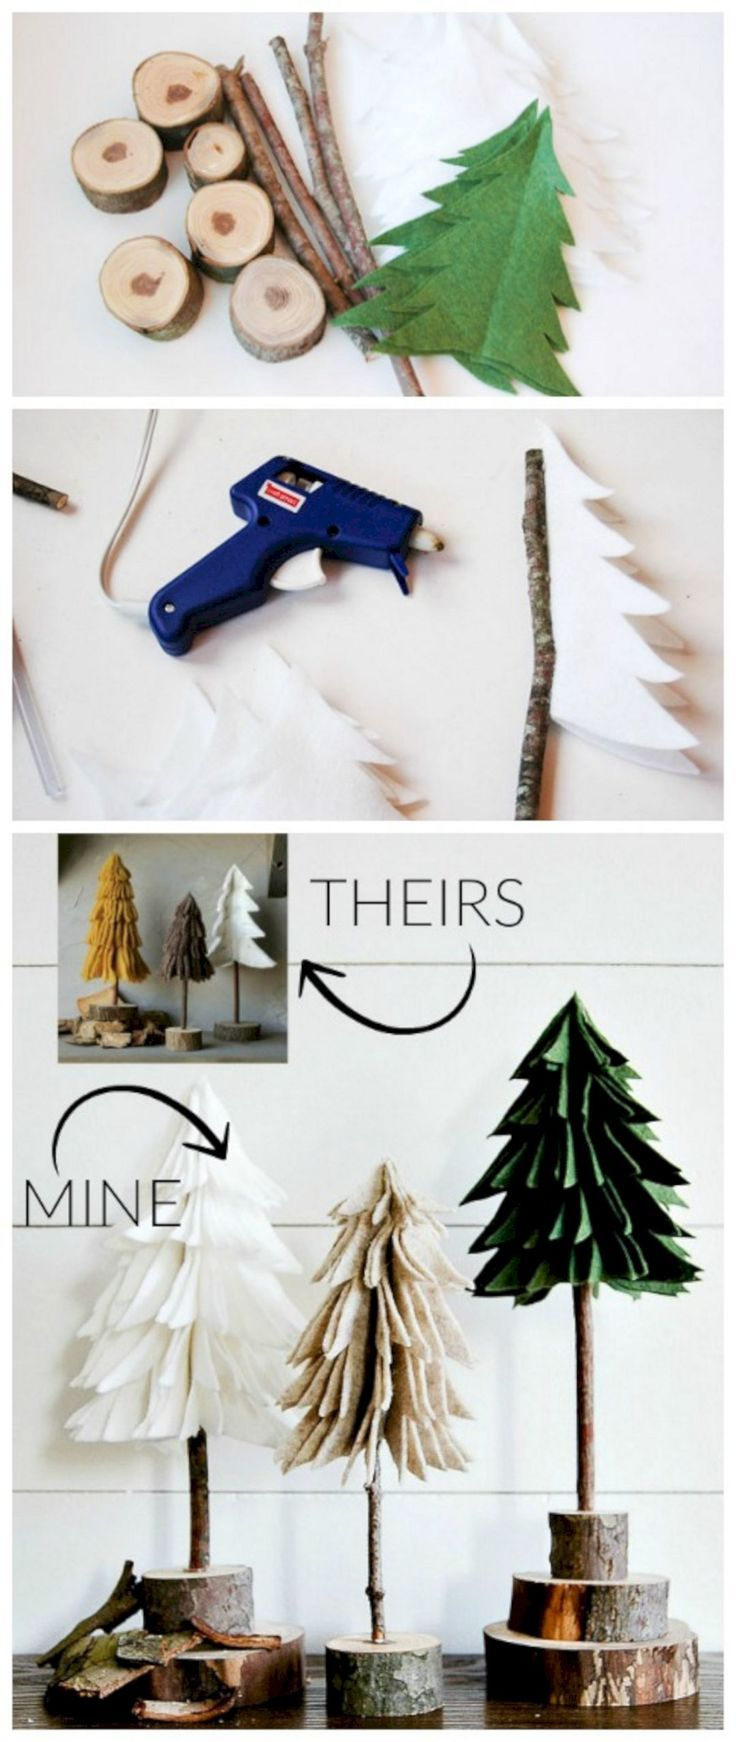 30 Easy Diy Christmas Crafts Ideas For Your Kids Https Montenr Com 30 Easy Diy Christmas Crafts Idea Easy Christmas Diy Christmas Crafts Felt Christmas Tree